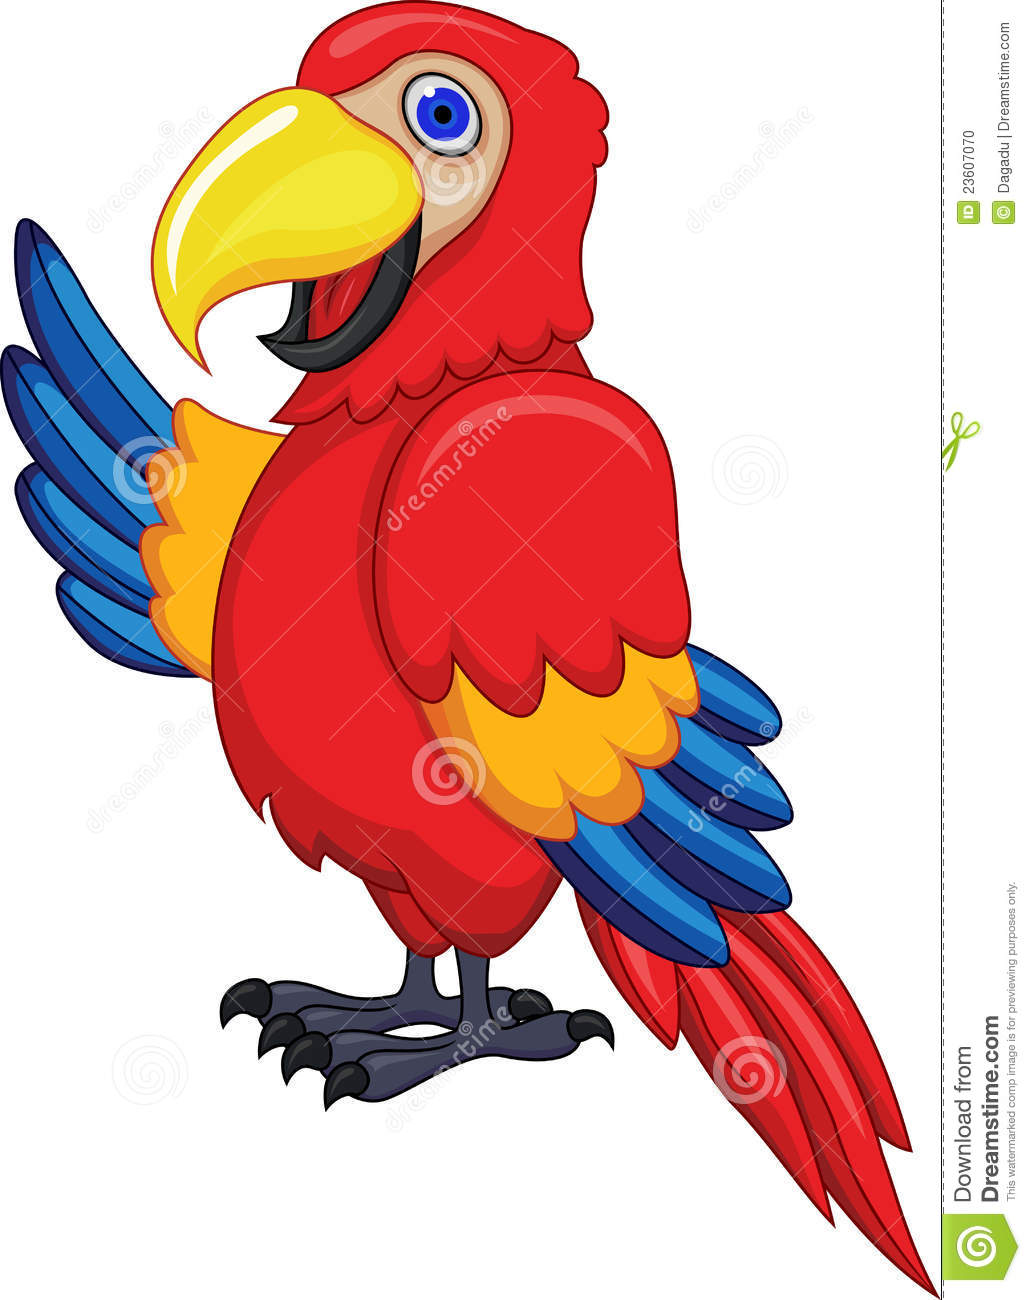 Macaw cliparts.